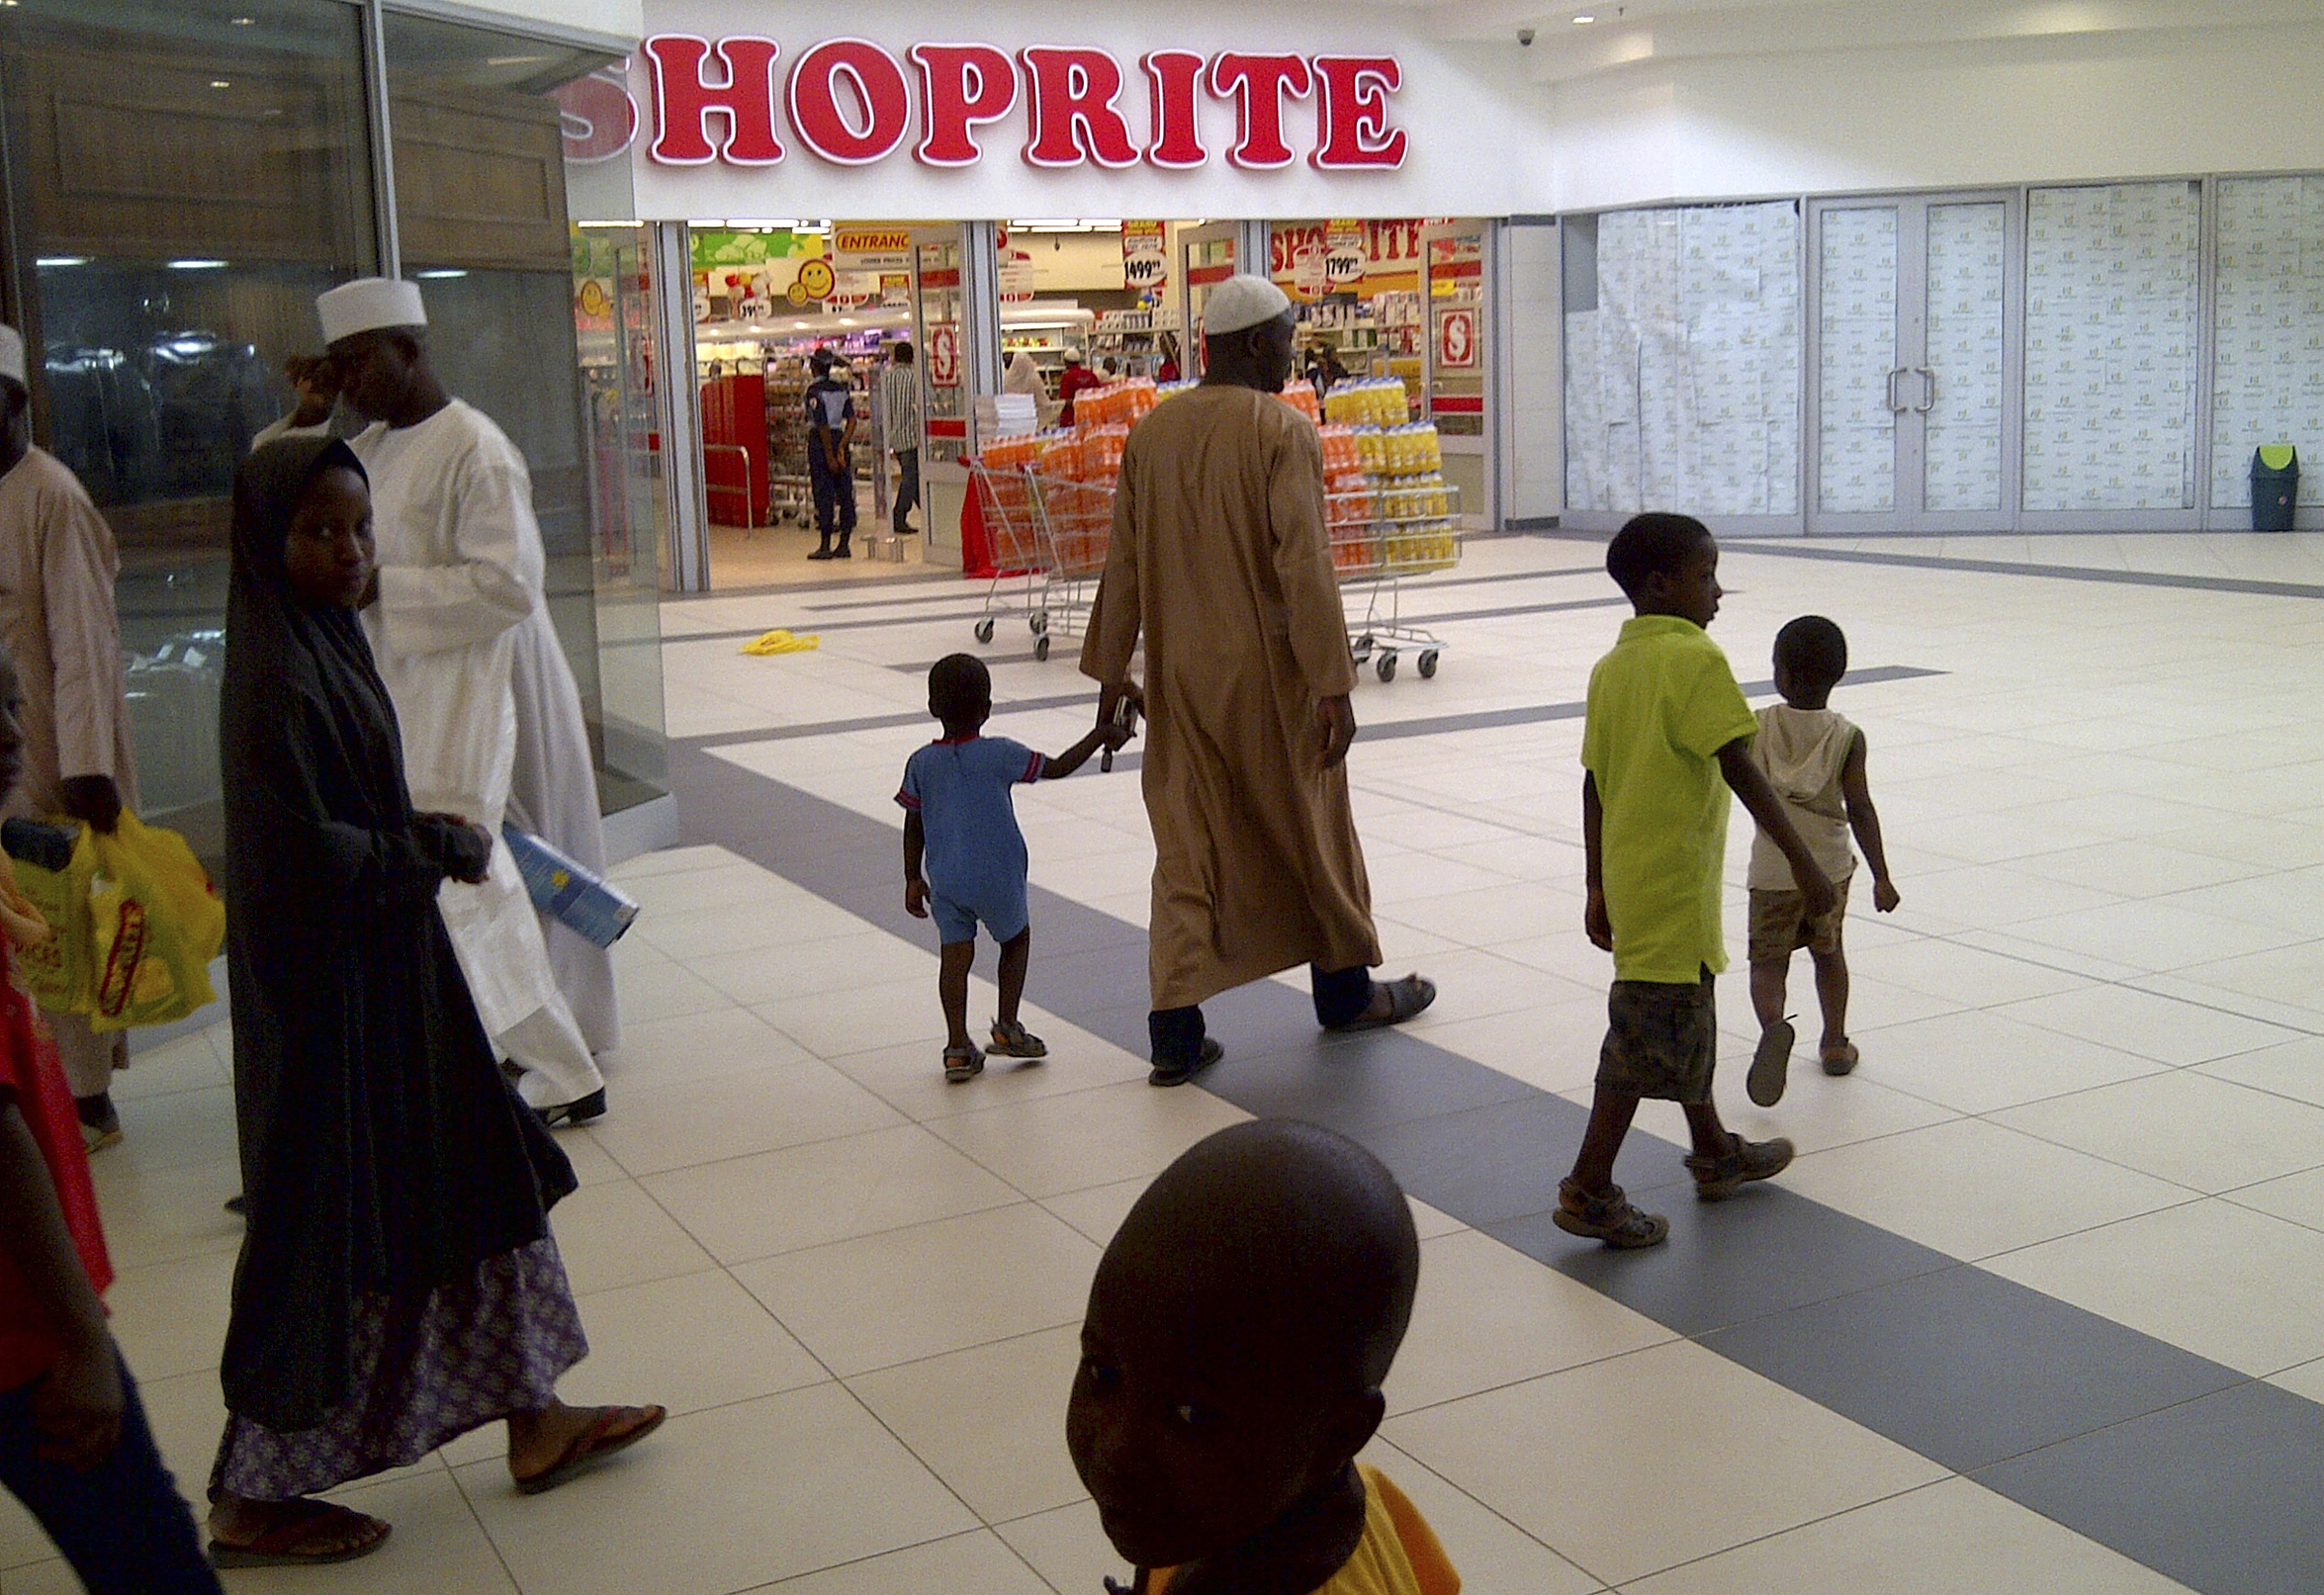 """A Nigerian family walks past a newly-opened Shoprite supermarket in Nigeria's northern city of Kano April 2, 2014. Kano is a dusty centuries-old Sahel belt metropolis that once offered gold, salt, slaves, leather and famed indigo-dyed textiles in its teeming markets at the end of an ancient caravan route linking Libya to black Africa south of the Sahara. Now, amid banner signs proclaiming """"lower prices you can trust"""", Kano consumers can wheel their carts between shelves replete with commercial brands from across the globe in a brand-new, air-conditioned Shoprite supermarket, anchoring a larger $85 million shopping mall development in the city. Picture taken April 2, 2014. REUTERS/Pascal Fletcher (NIGERIA - Tags: BUSINESS SOCIETY) - RTR3KGVD"""